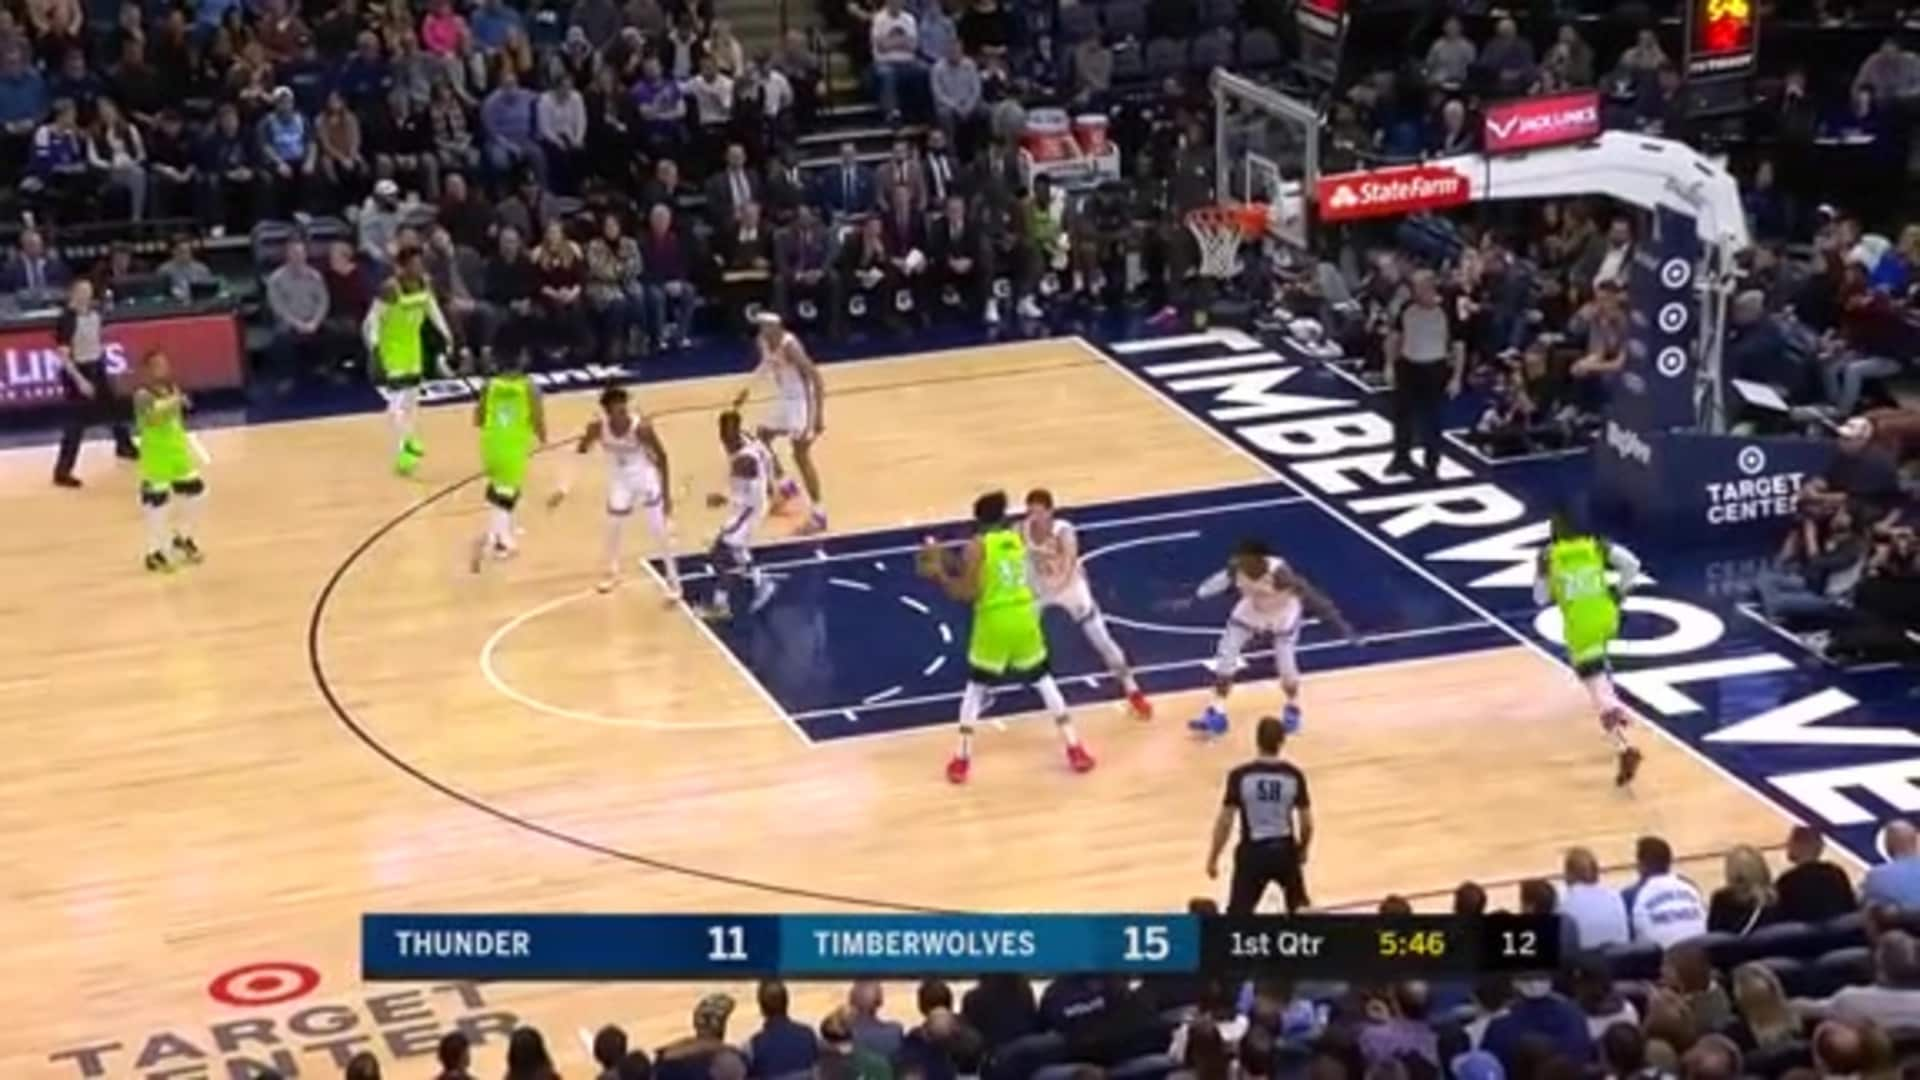 Highlights | Karl-Anthony Towns 37 Points, 8 Rebounds, 6 Assists, 2 Steals, 2 Blocks vs. Thunder (1.25.20)